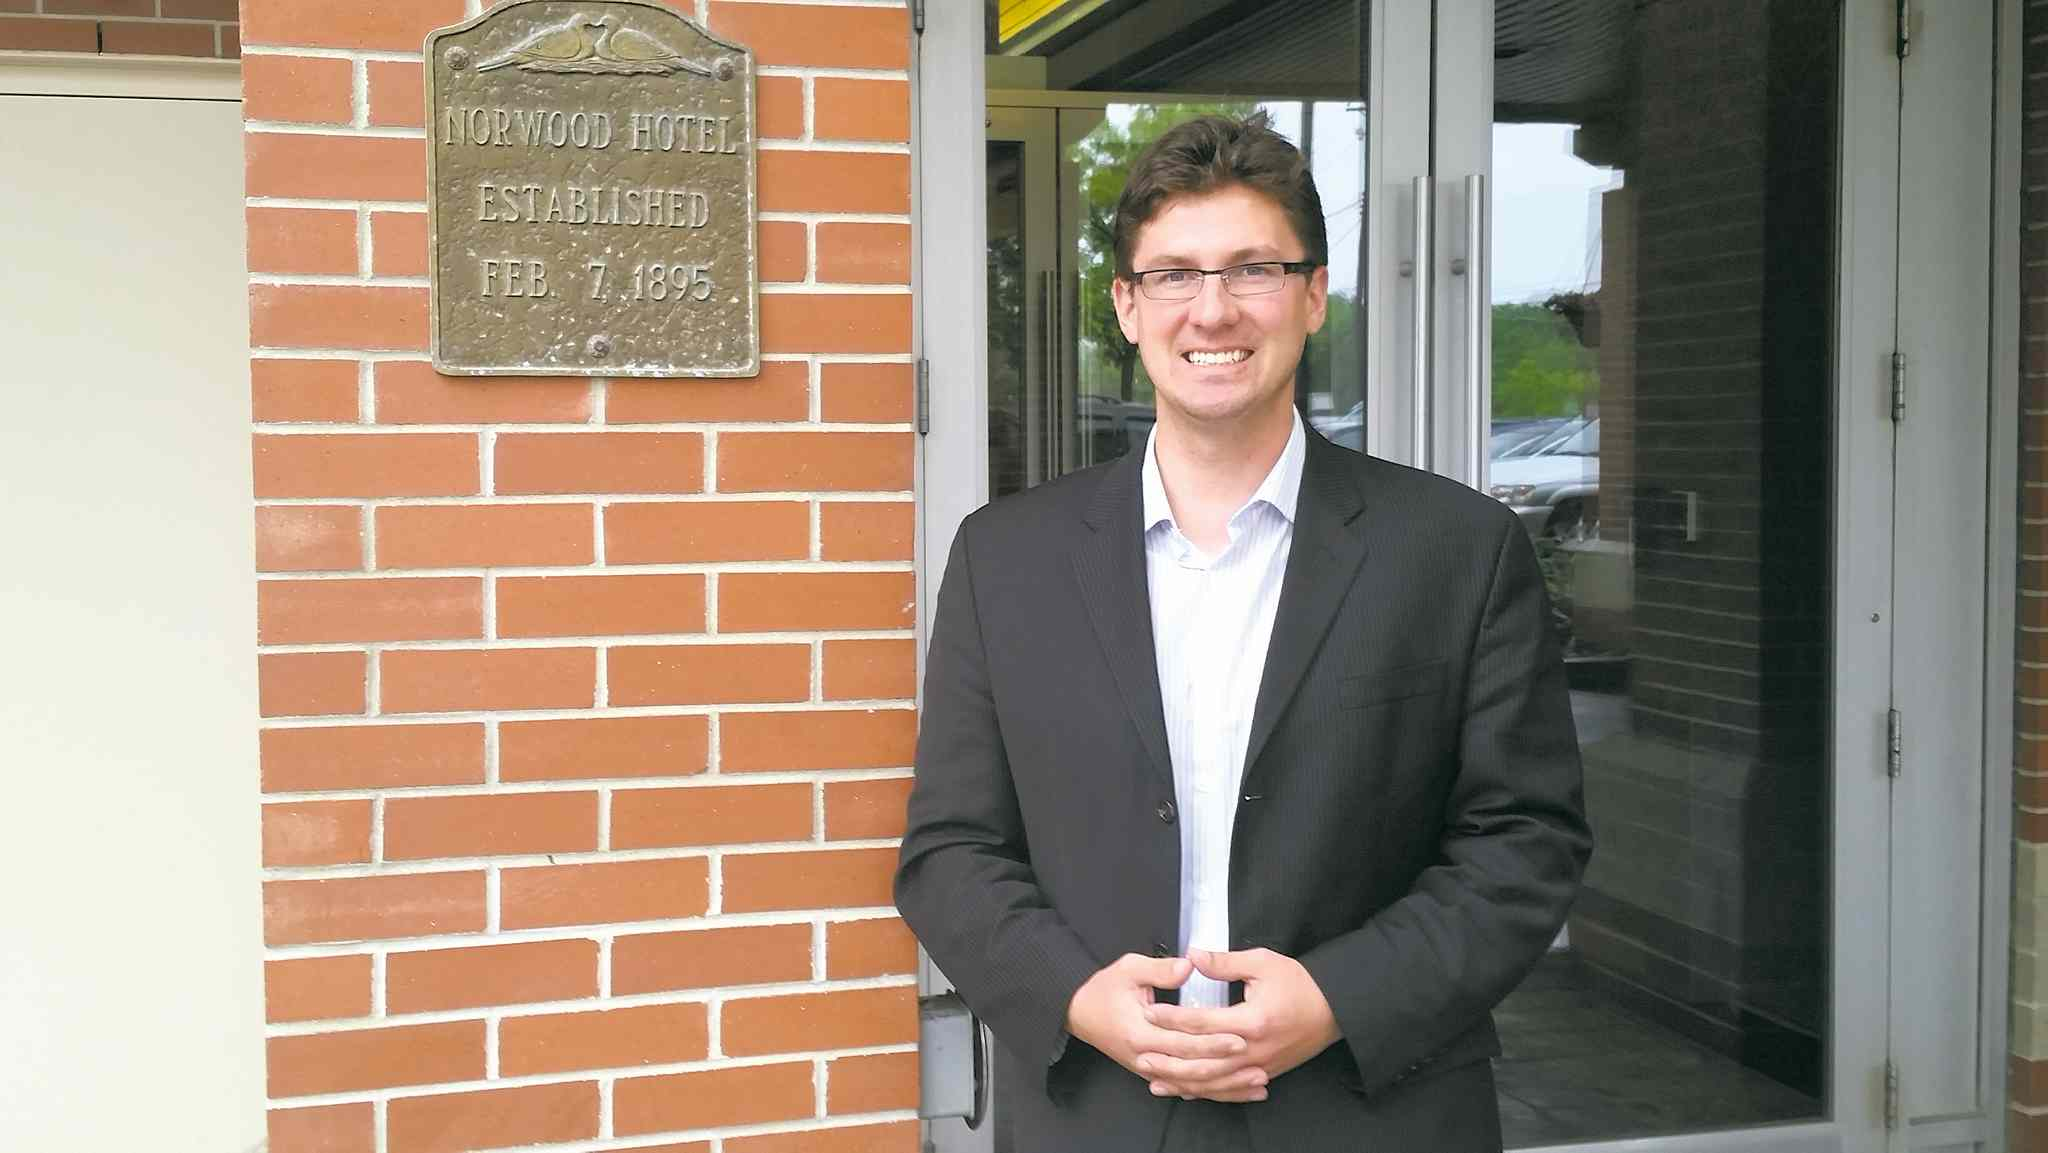 Matt Allard, Chambre de commerce francophone de Saint-Boniface's CEO, pictured outside the Marion Hotel.